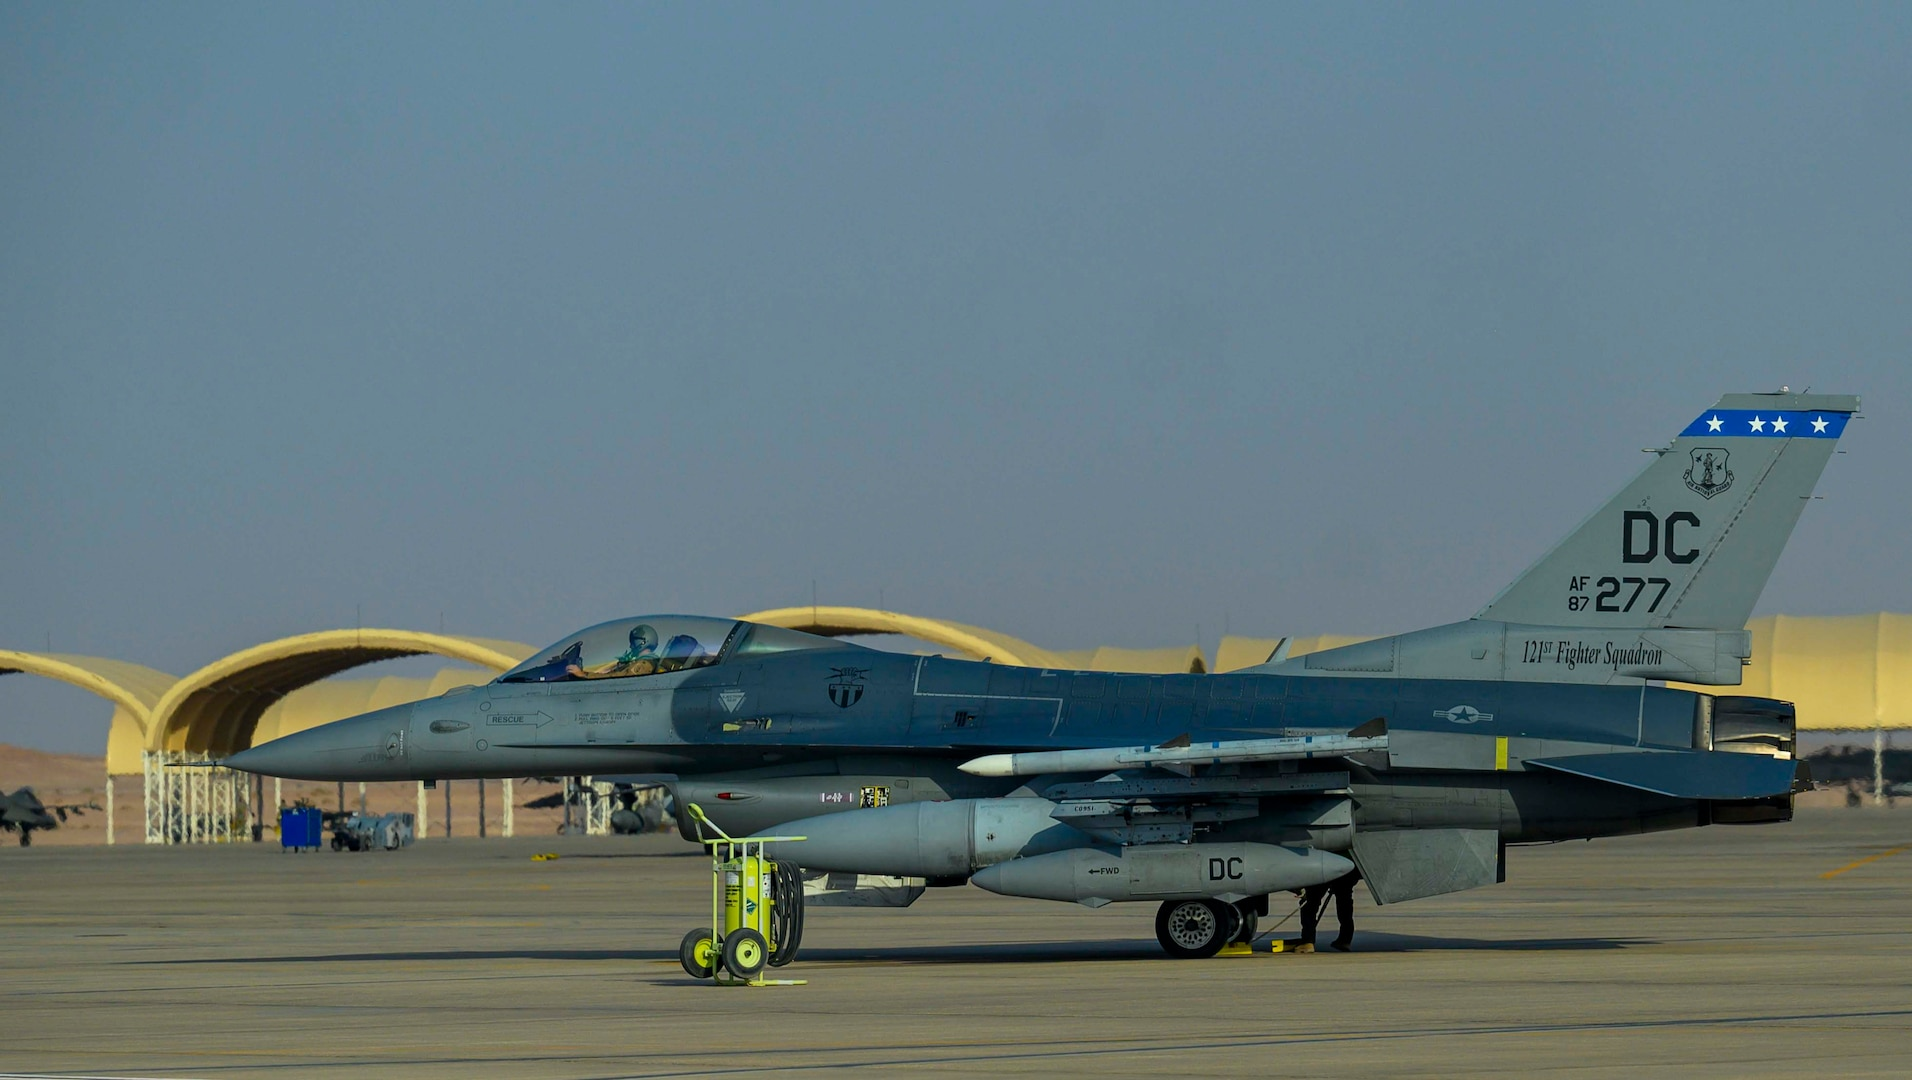 """A U.S. Air Force F-16C Fighting Falcon from District of Columbia Air National Guard's 113th Wing, known as the """"Capital Guardians,"""" sits on the flight line at Prince Sultan Air Base, Kingdom of Saudi Arabia, July 9, 2021. The wing deployed a contingent of F-16s to PSAB to reinforce the base's defensive capabilities, provide operational depth, and support U.S. Central Command operations in the region. (U.S. Air Force Photo by Senior Airman Samuel Earick)"""